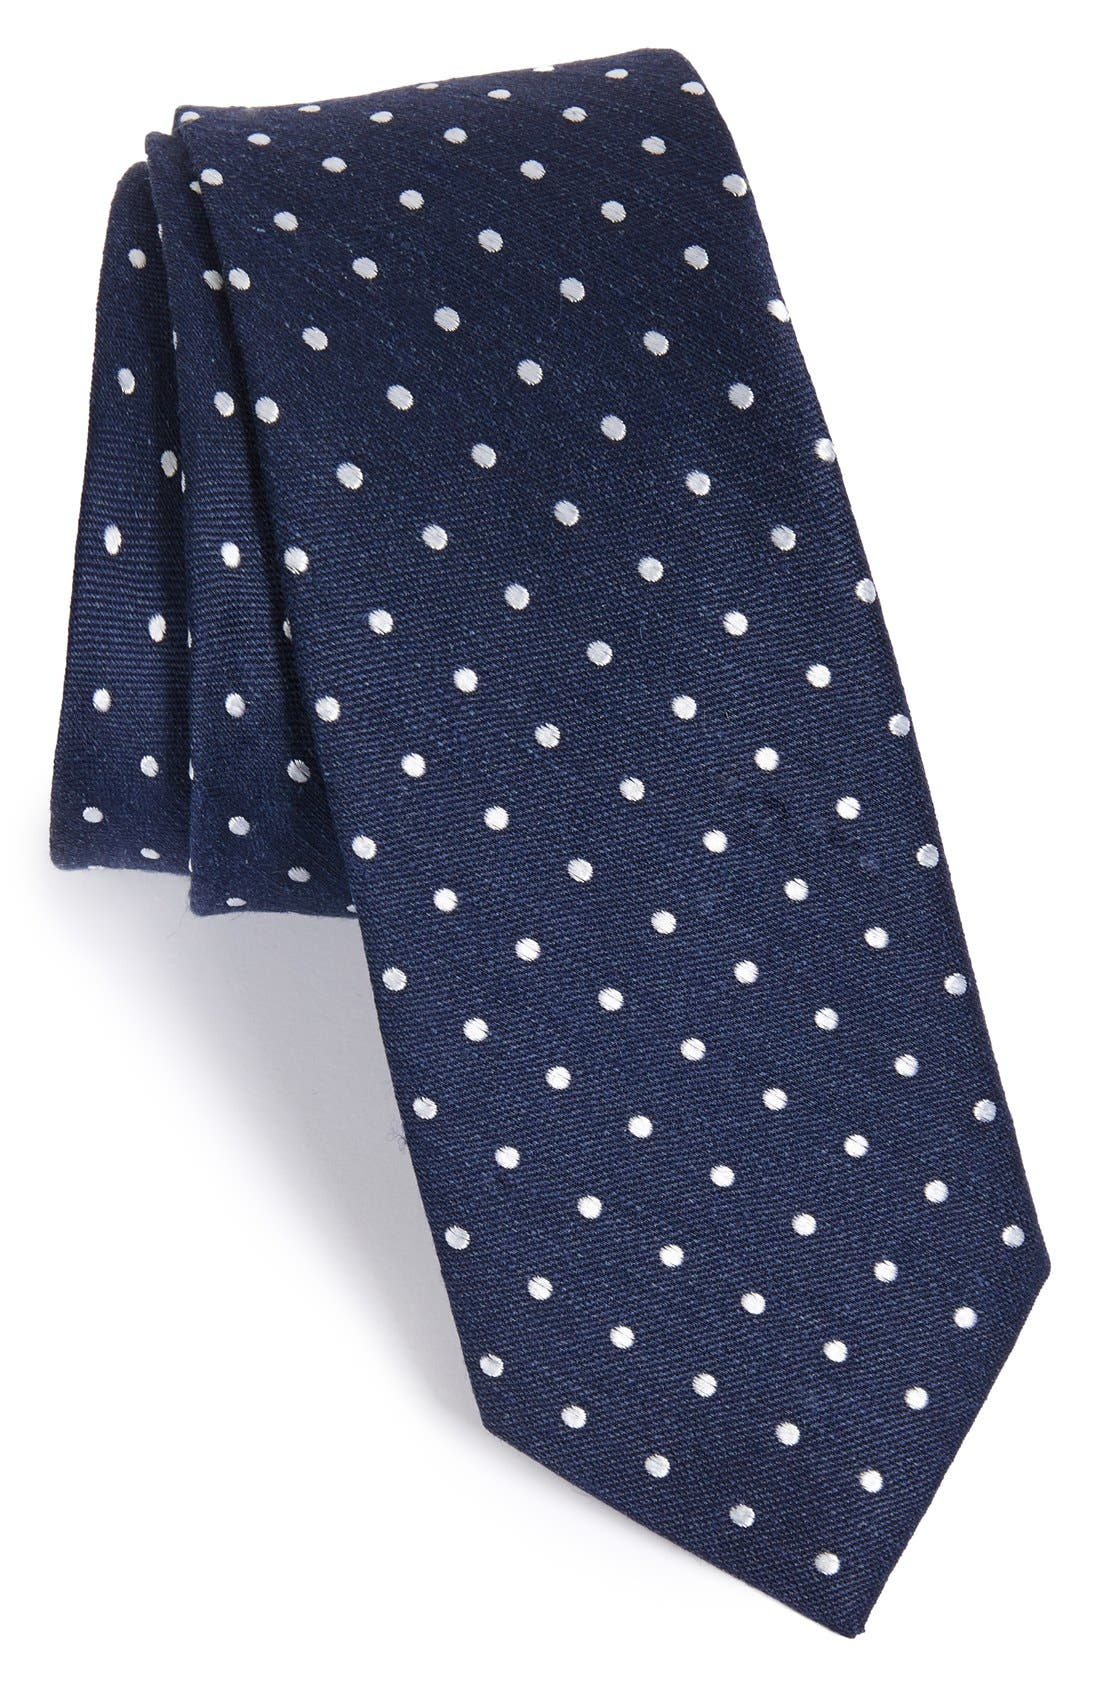 Alternate Image 1 Selected - The Tie Bar Dot Silk & Linen Tie